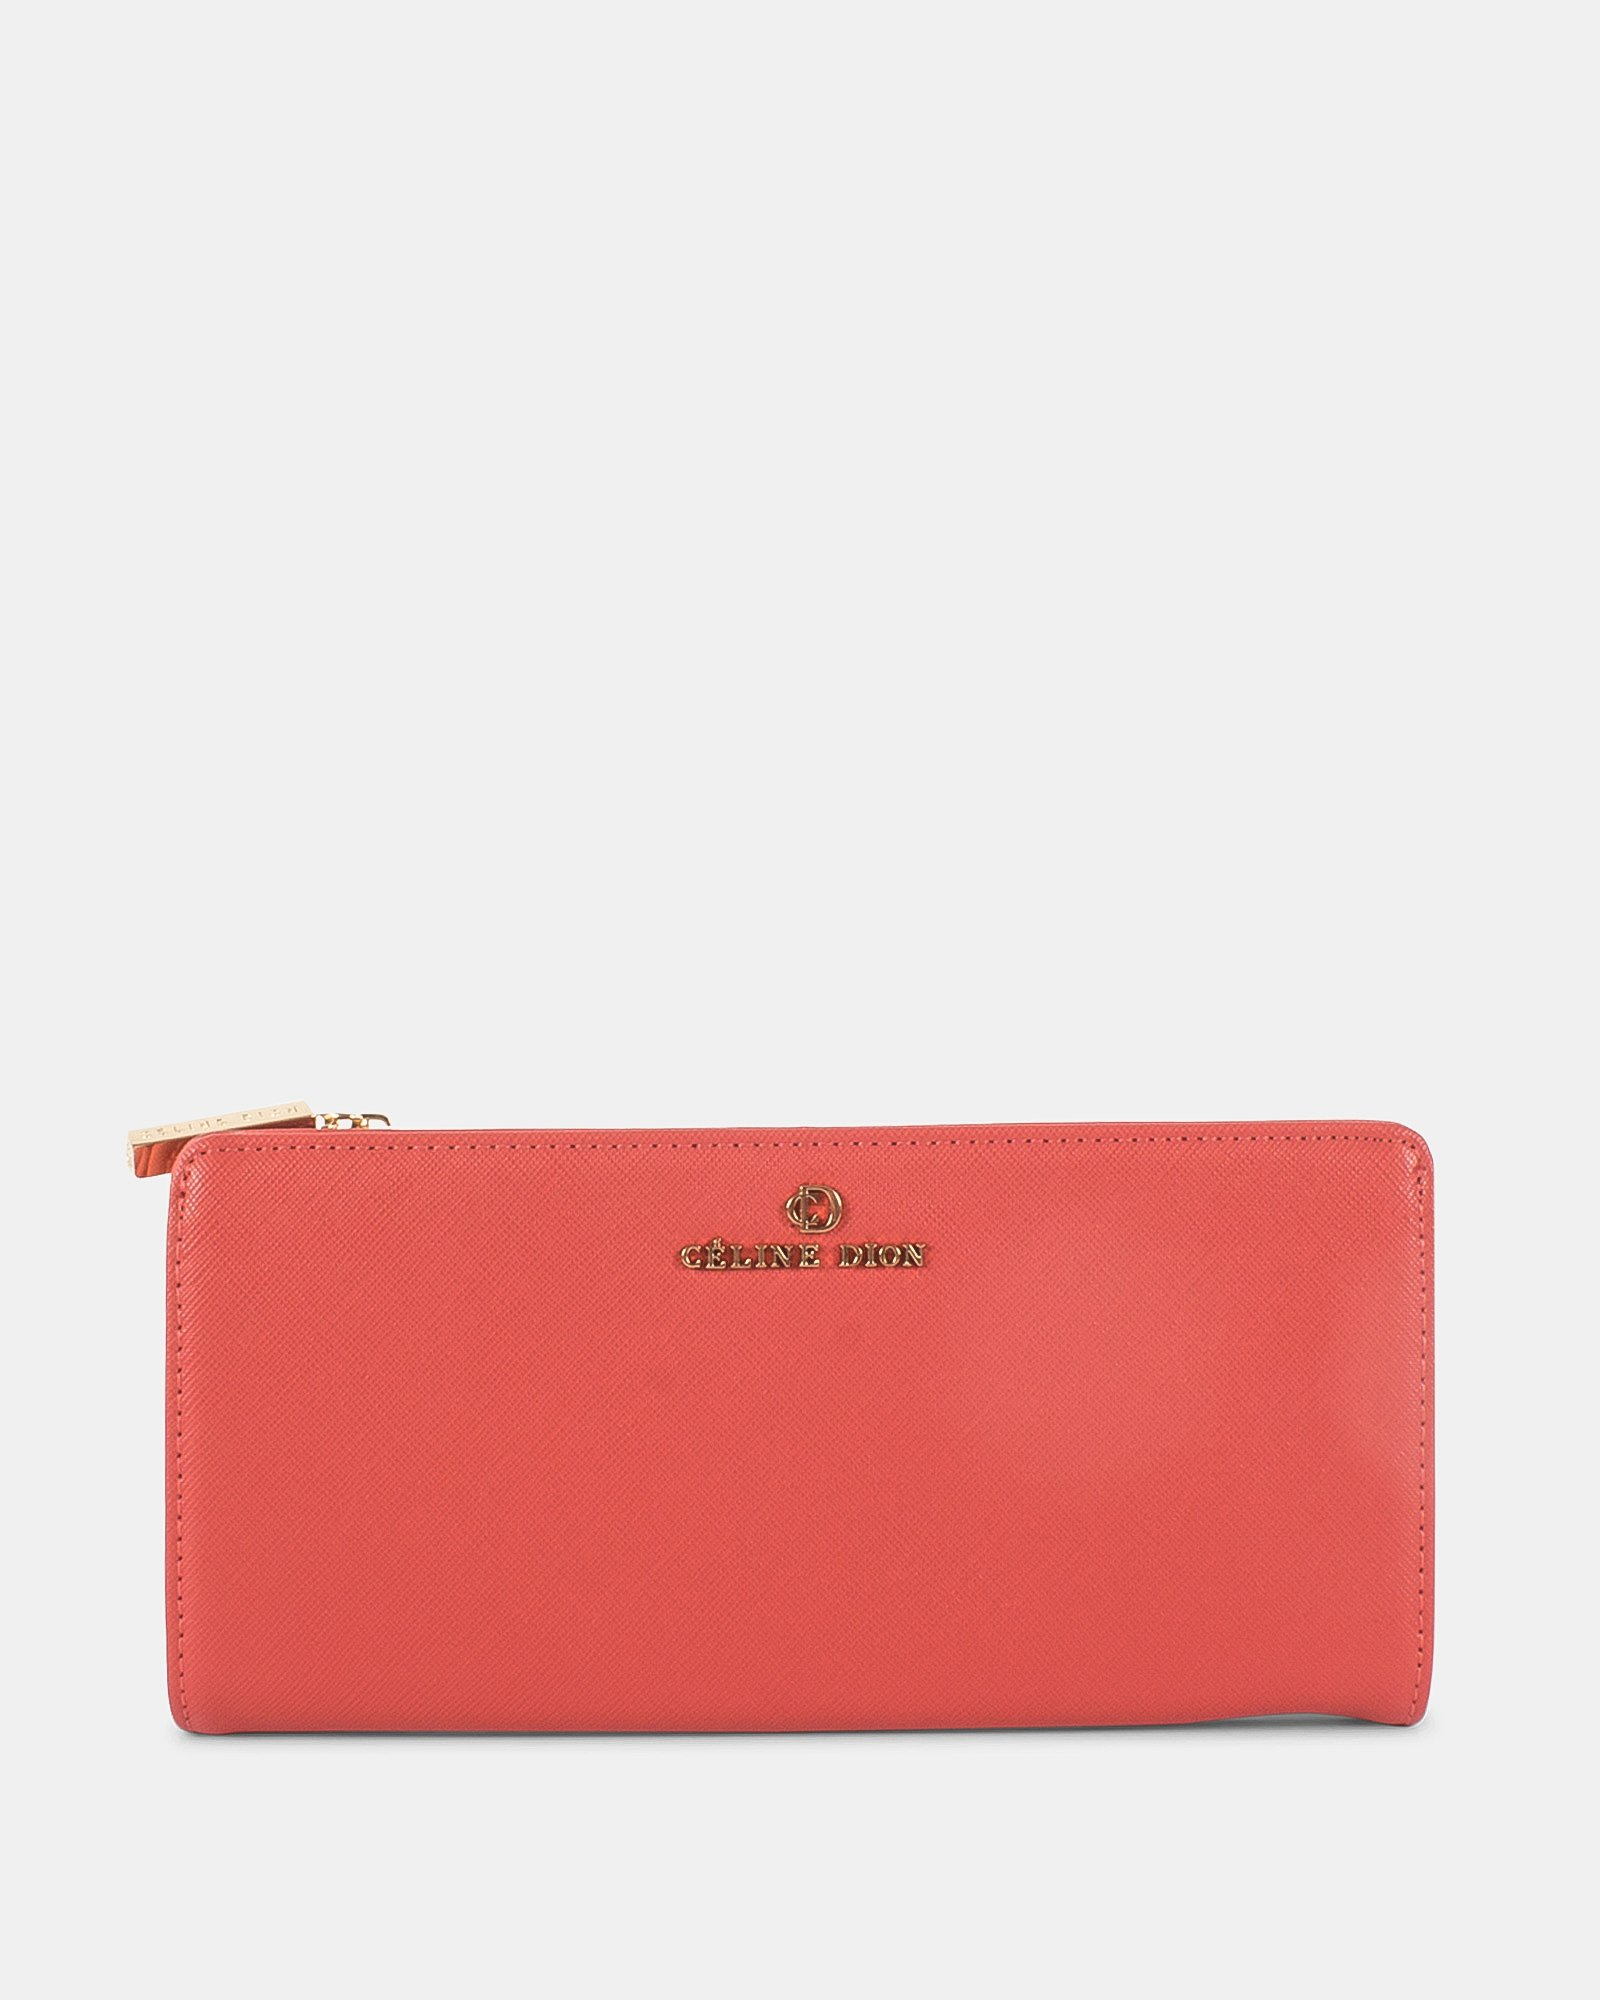 GRAZIOSO - Long wallet with zipped - Coral - Céline Dion - Zoom